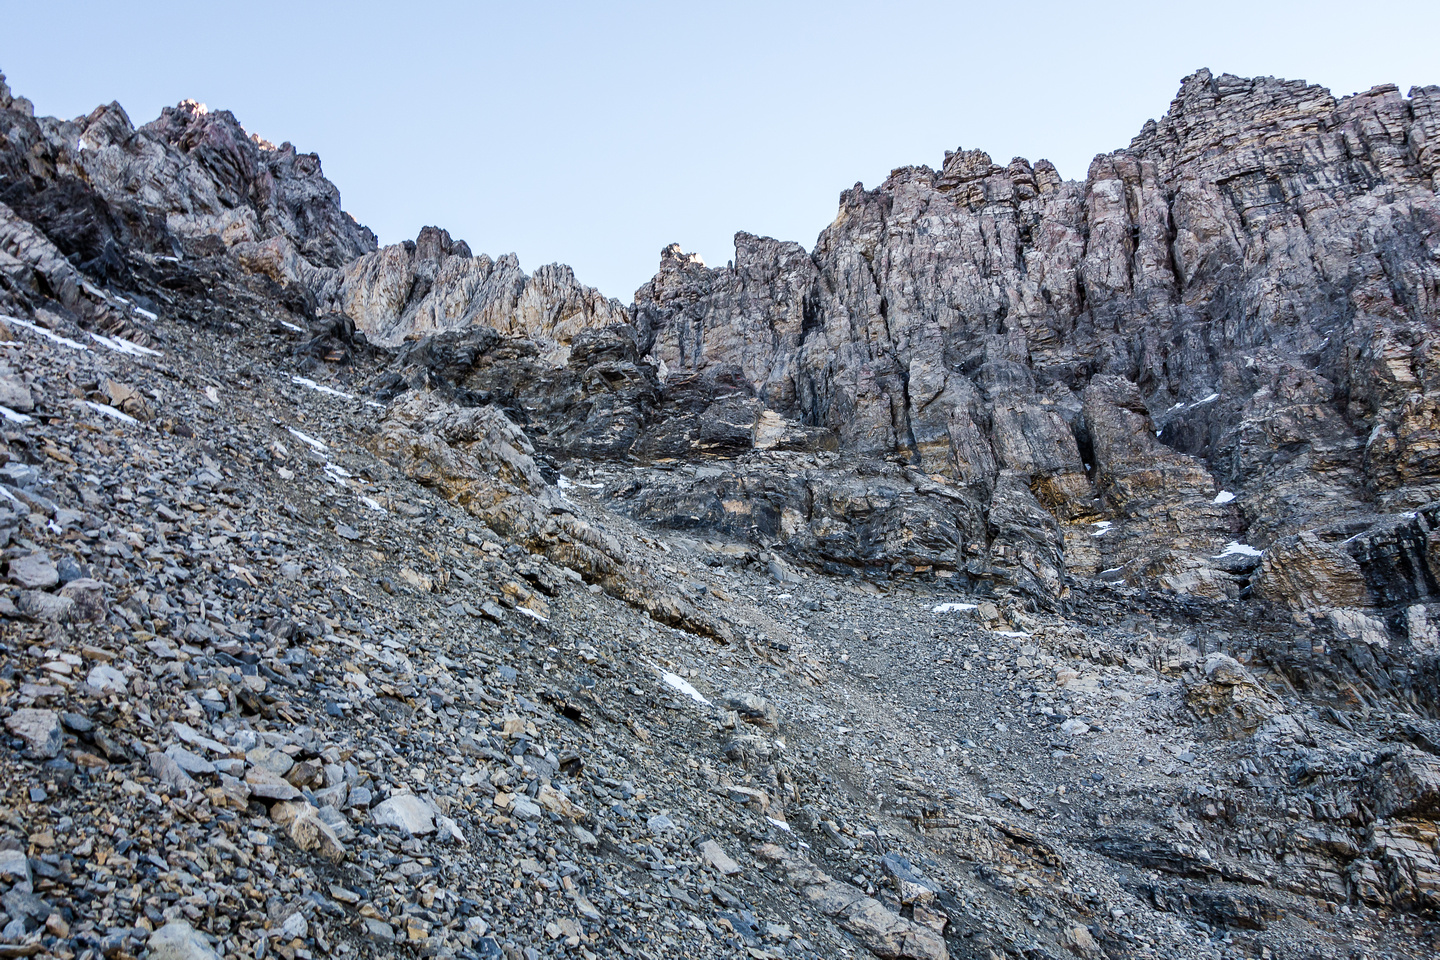 We traversed this terrain - you can make out the twin 'horns' high above our eventual ascent gully at center here.